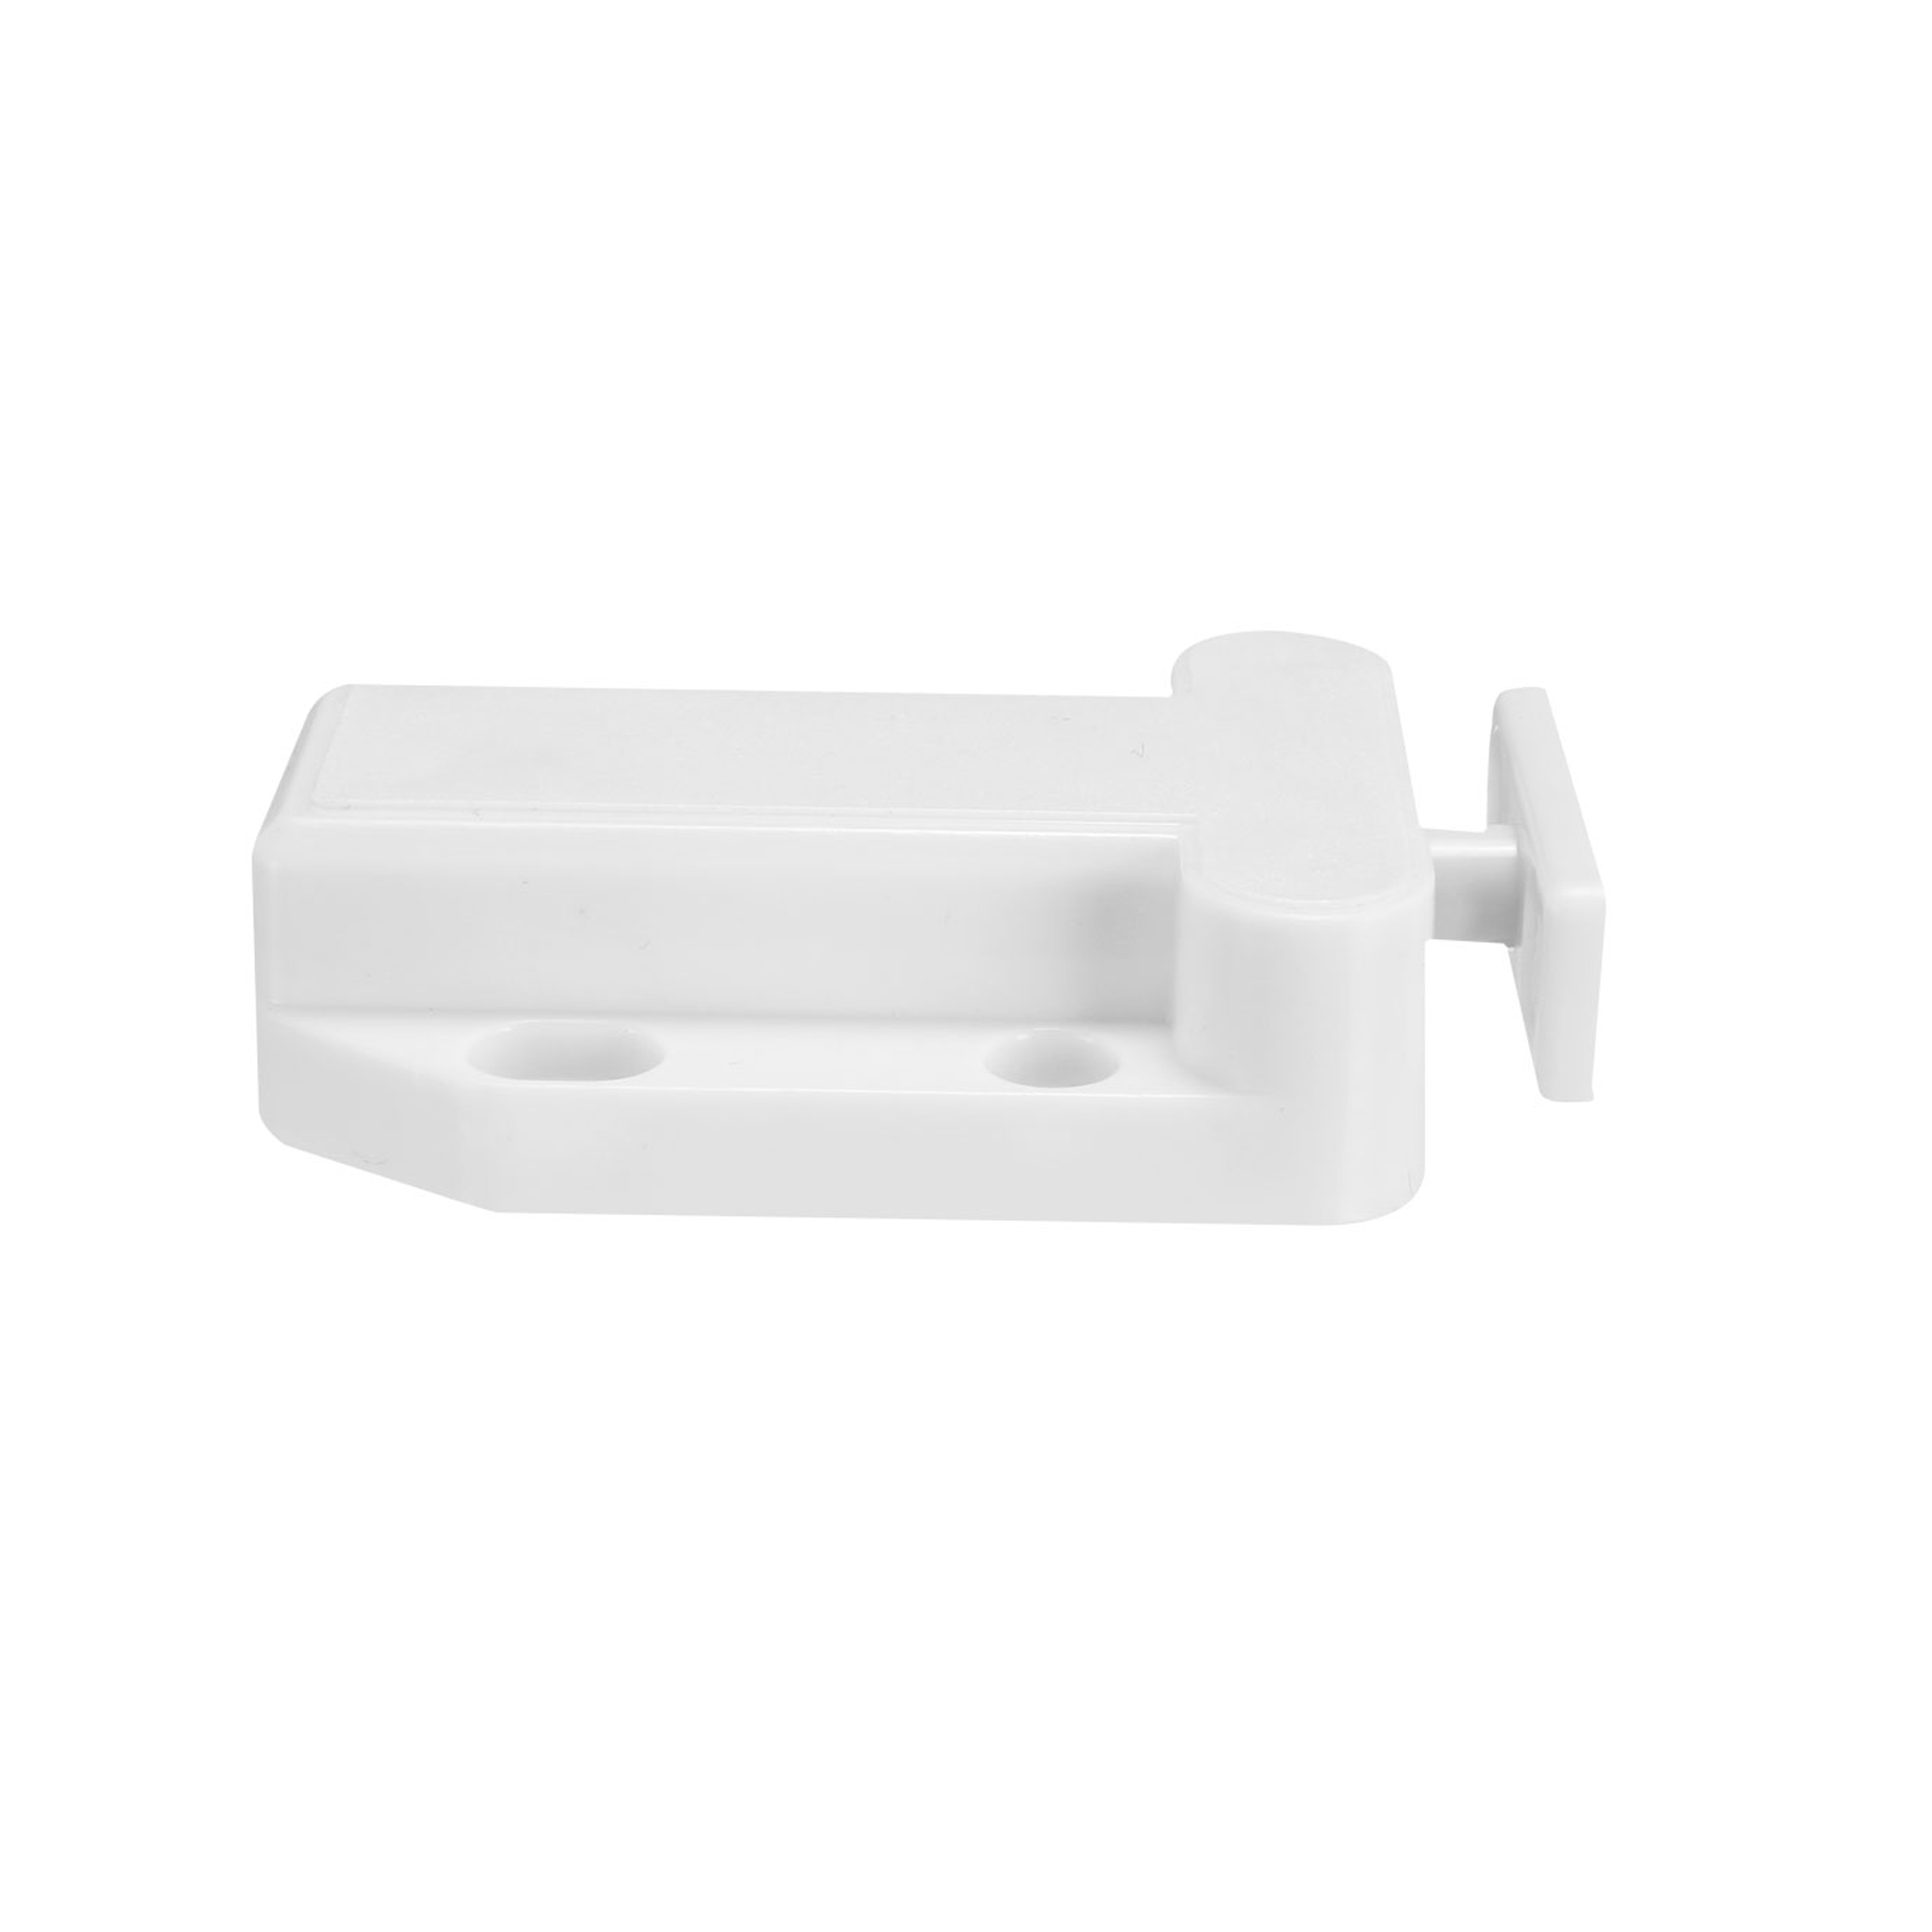 Push Open Latch Lock Touch Catch for Bedroom Cabinet Cupboard Drawer White 5Pcs - image 3 of 8